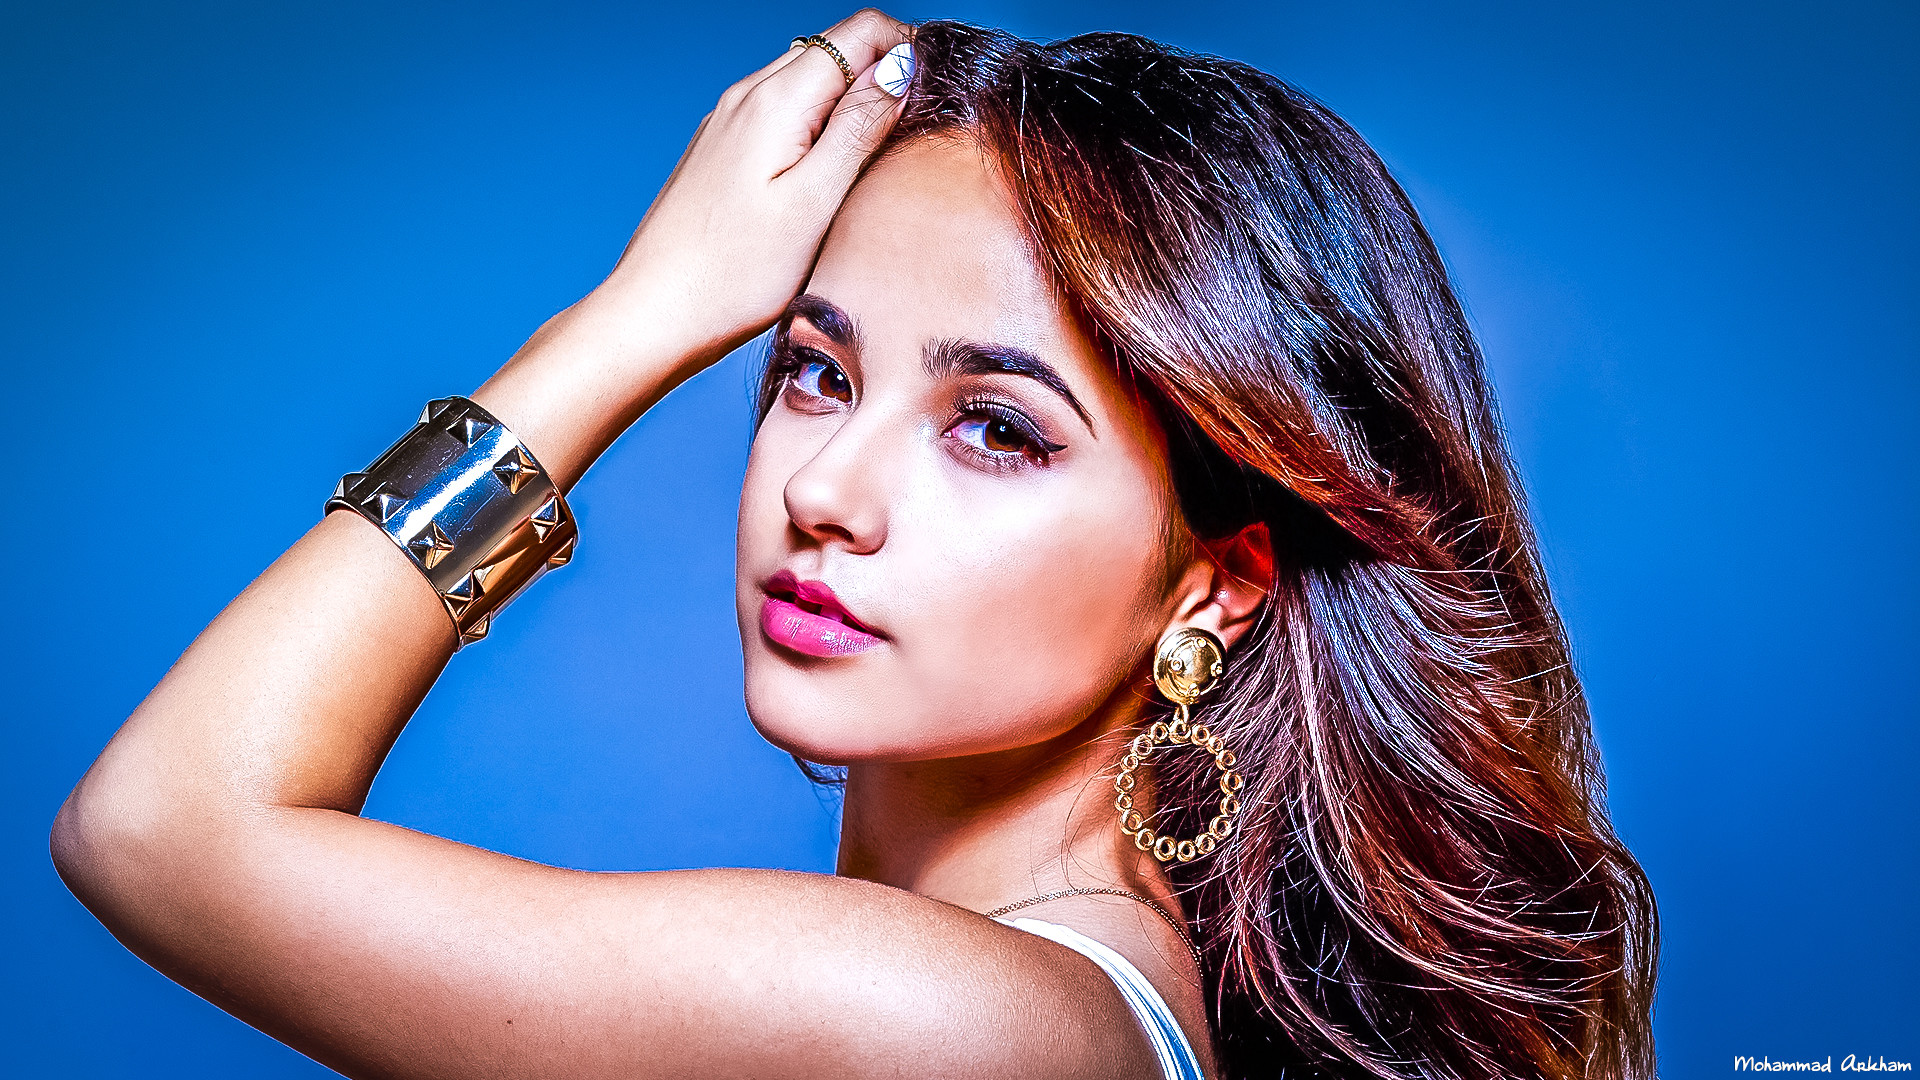 Res: 1920x1080, Music - Becky G Latina Mexico Music Girl Wallpaper